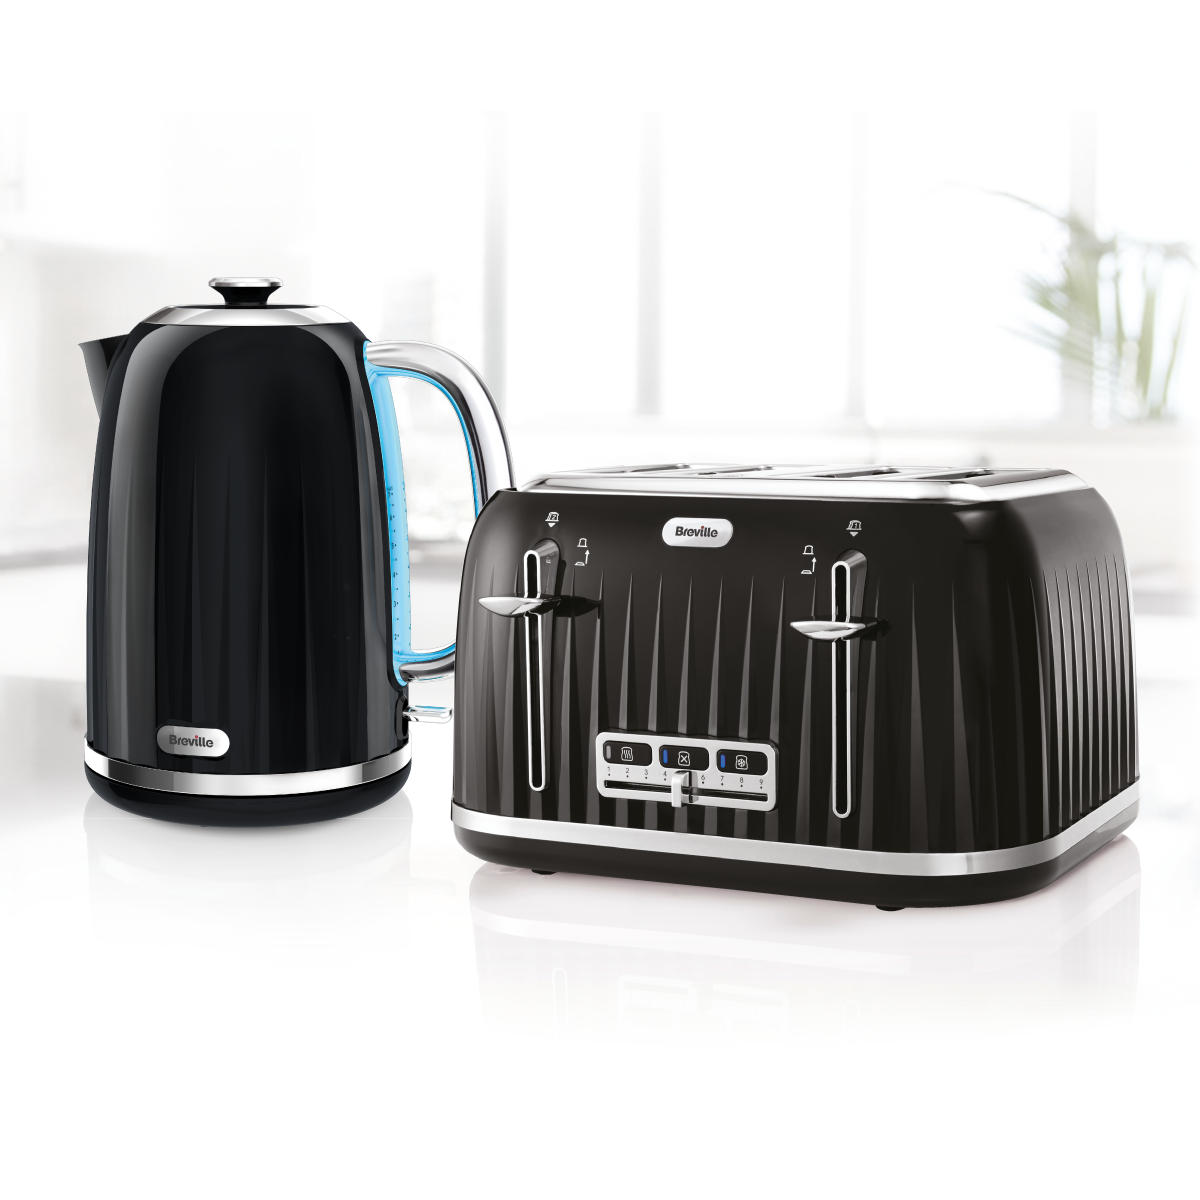 Matching Coffee Maker And Toaster : Breville Impressions Collection Kettle & Toaster Set, Black